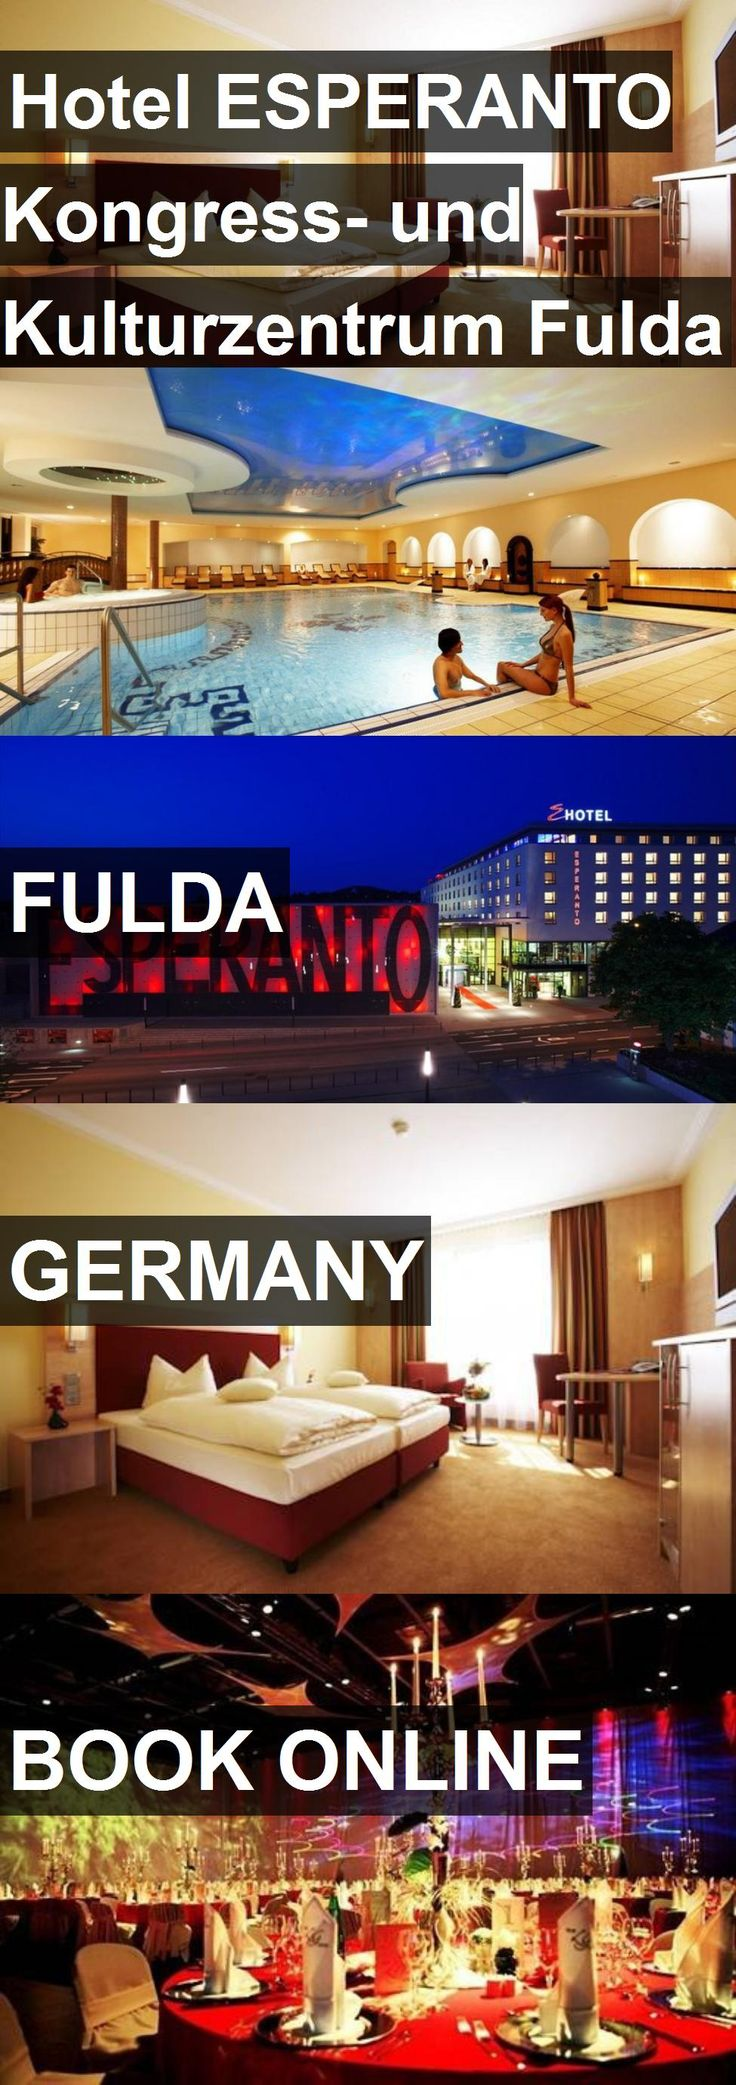 Hotel ESPERANTO Kongress- und Kulturzentrum Fulda in Fulda, Germany. For more information, photos, reviews and best prices please follow the link. #Germany #Fulda #travel #vacation #hotel